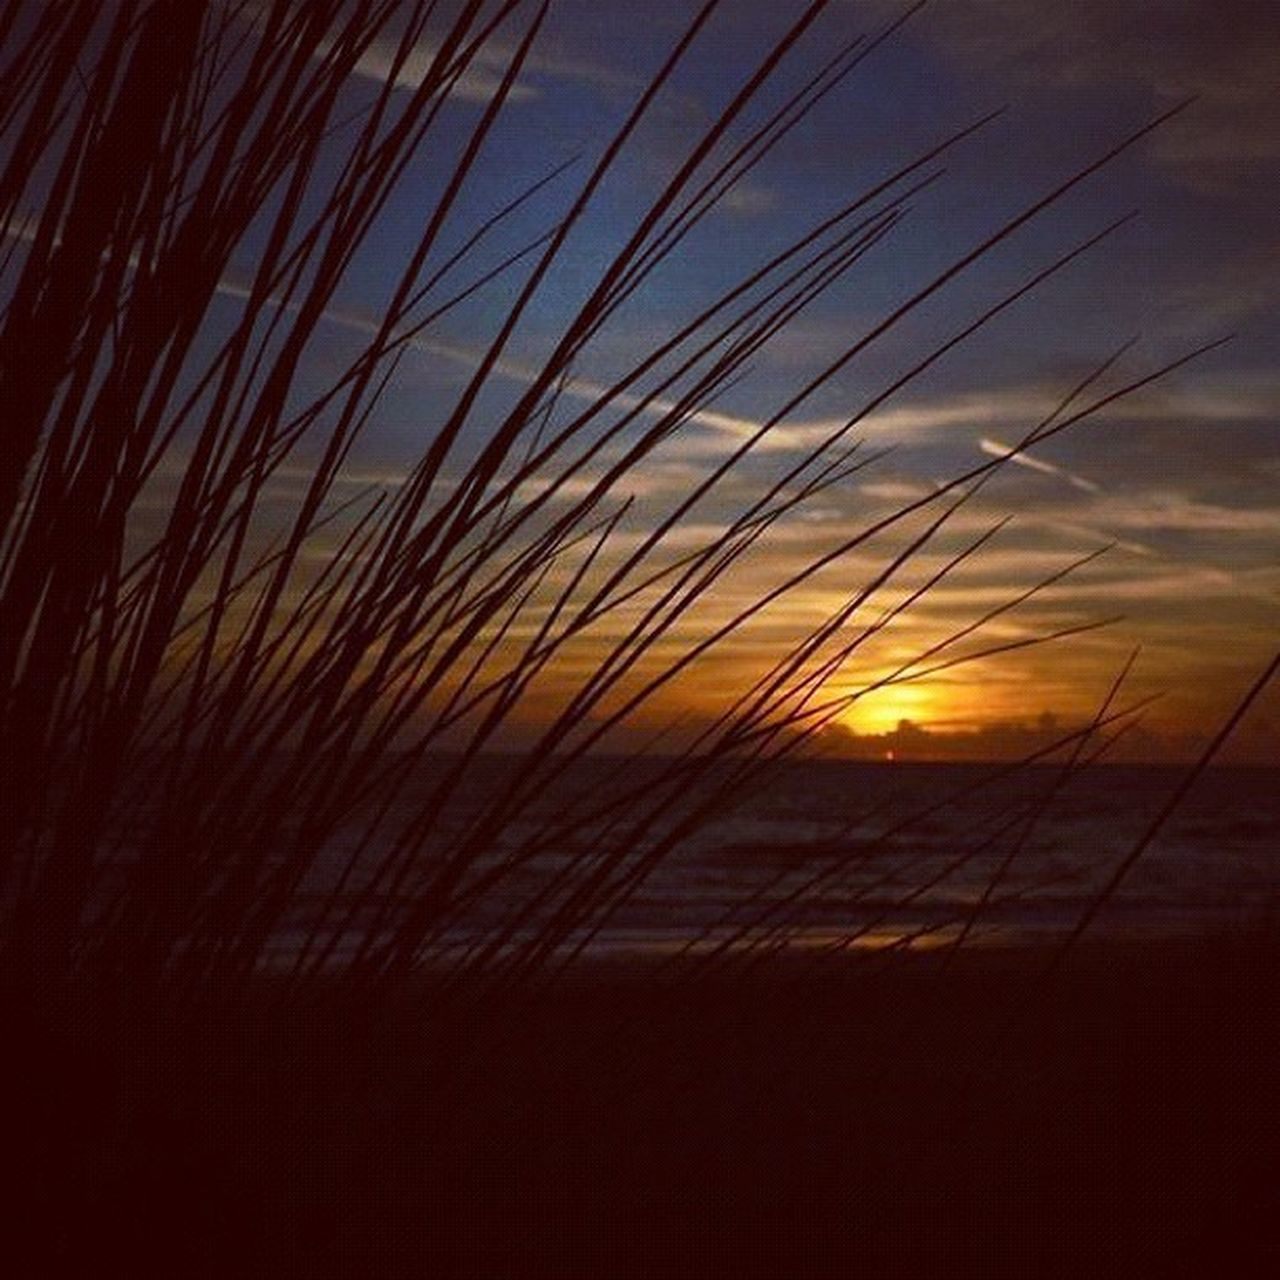 sunset, nature, scenics, silhouette, sky, beauty in nature, sun, tranquil scene, tranquility, outdoors, no people, growth, close-up, day